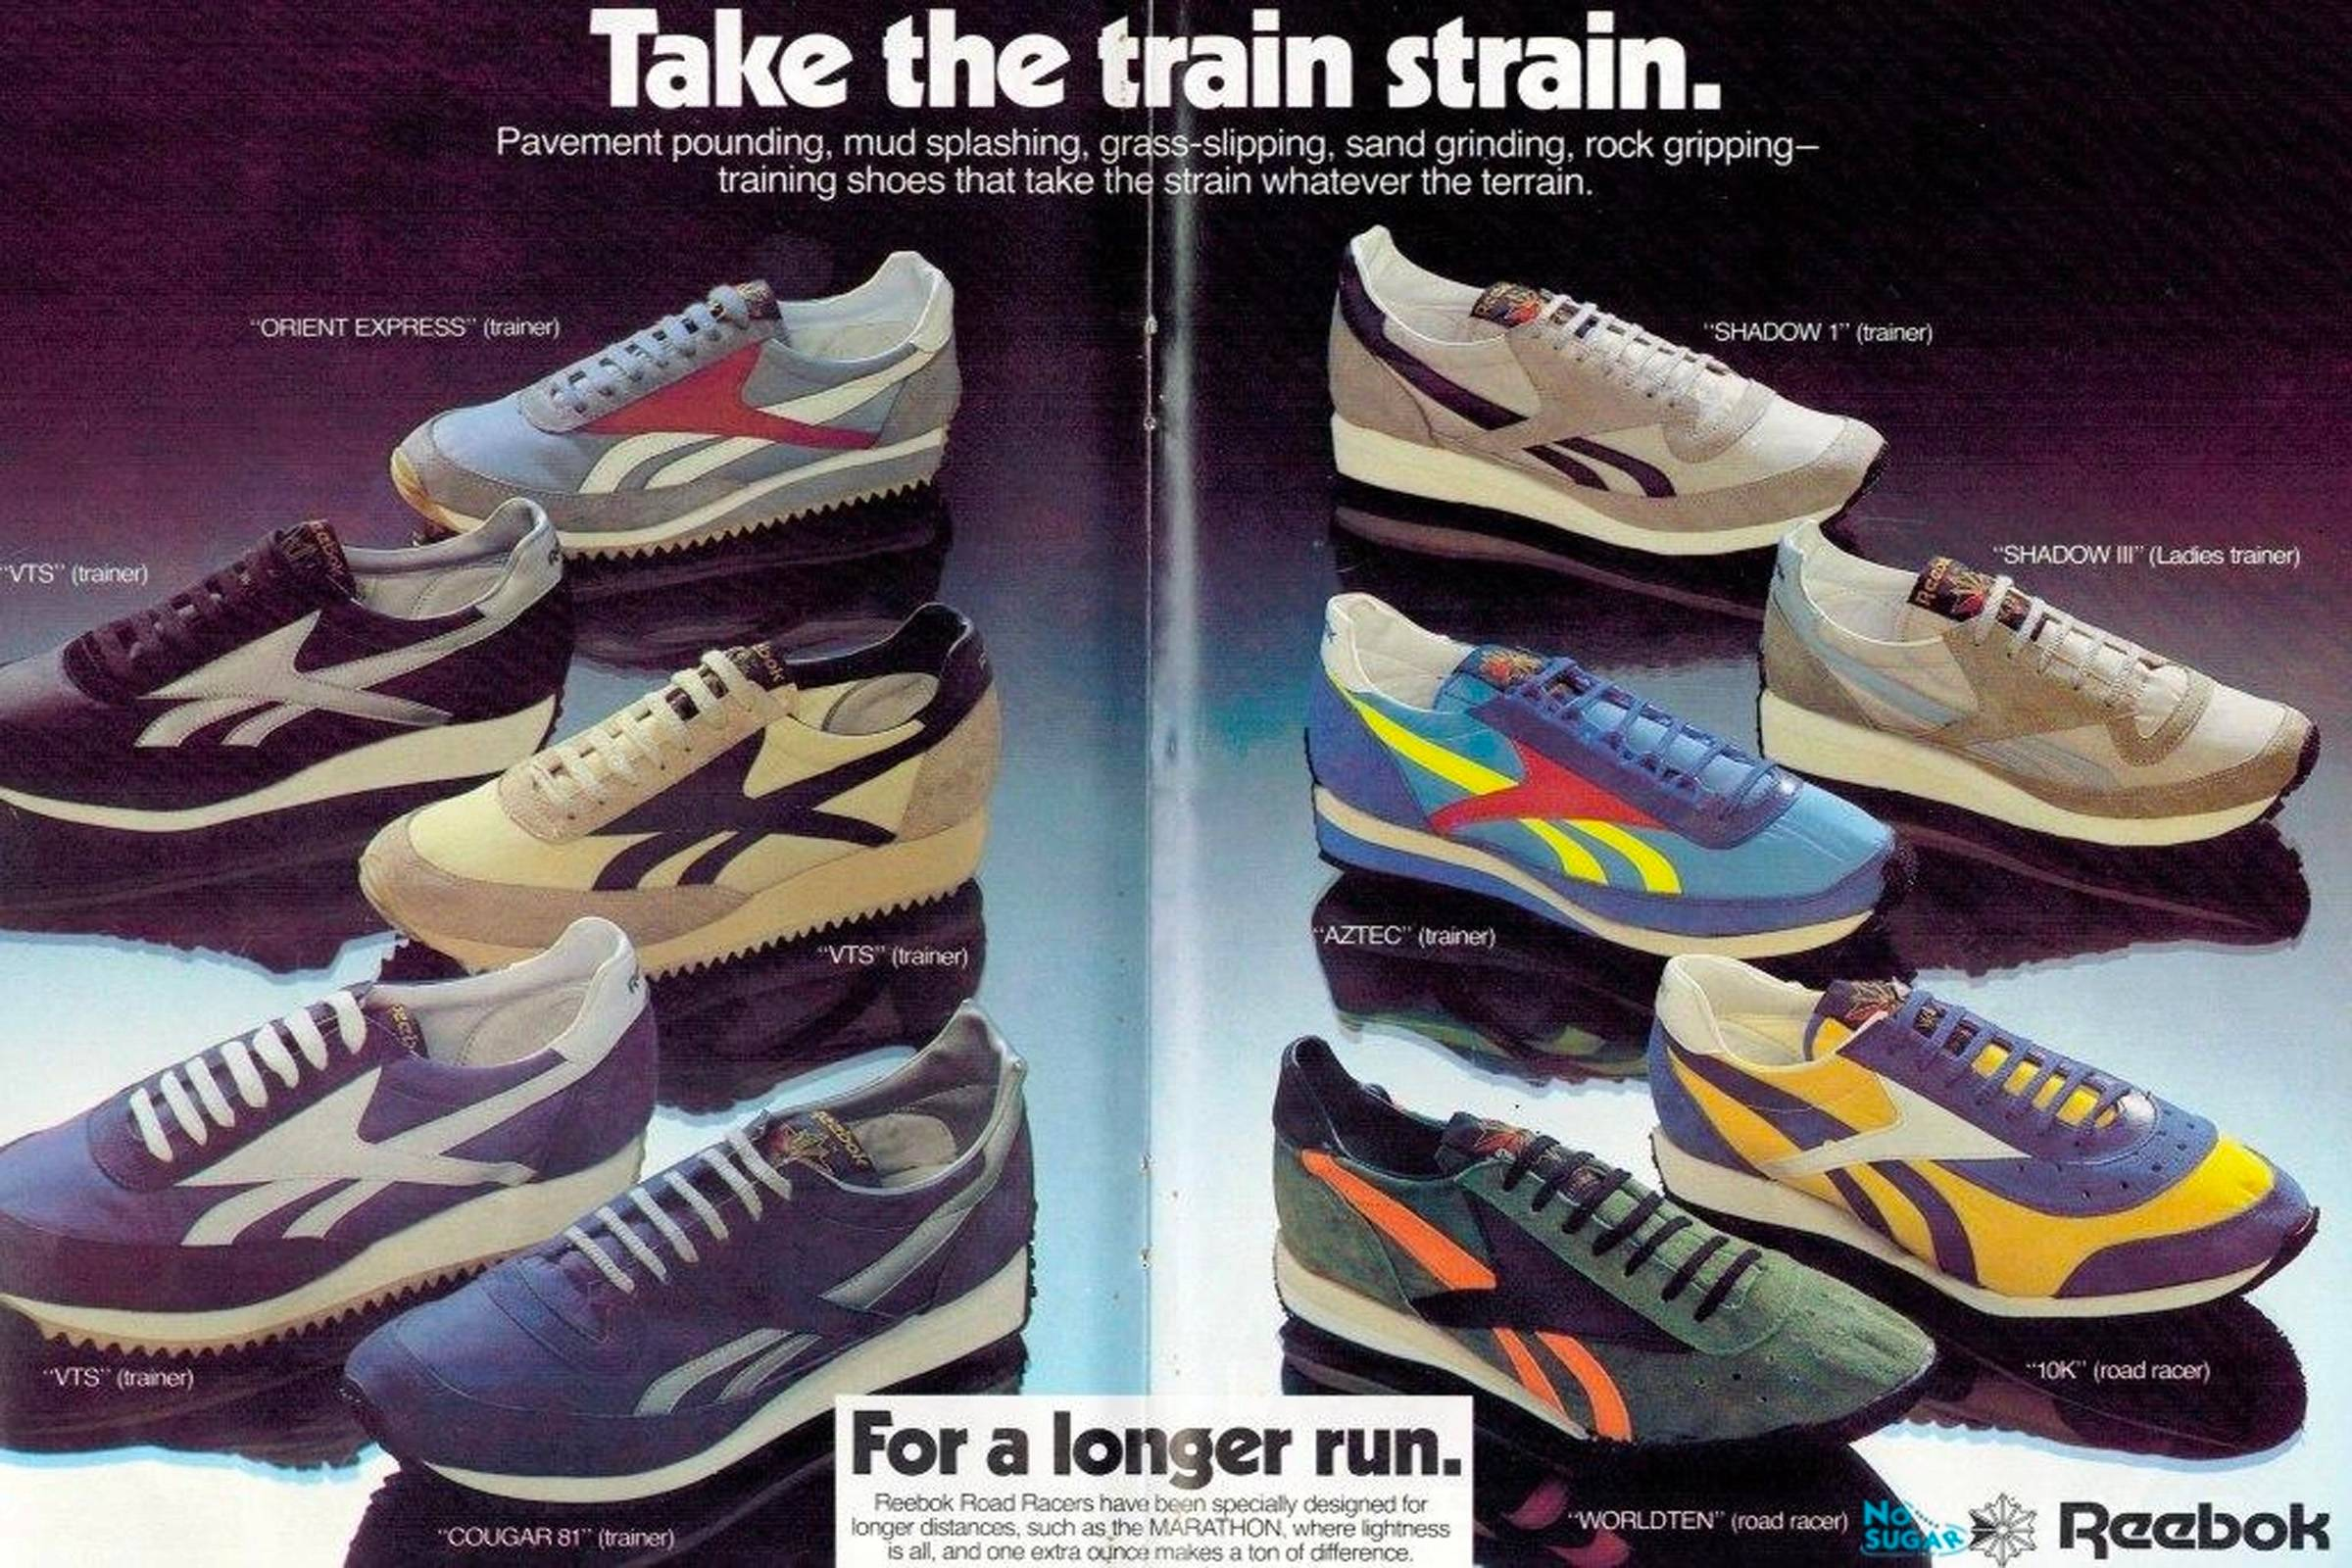 1980-1981 Reebok catalog ad displaying various training shoes